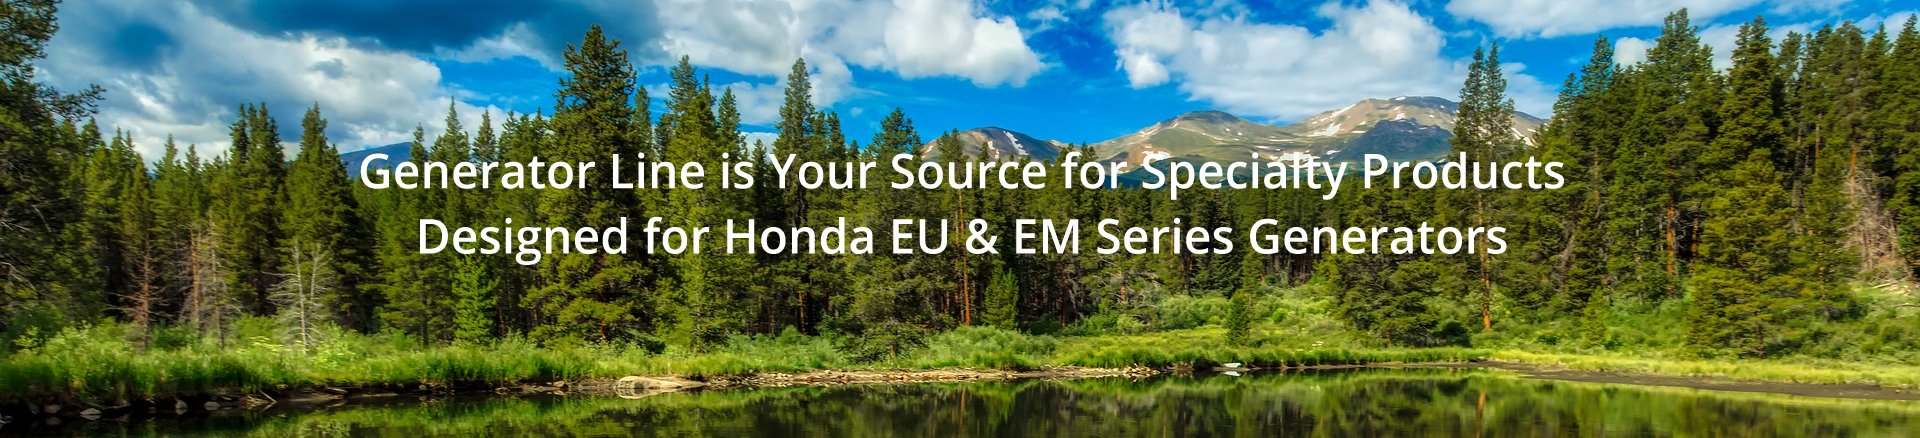 Generator Line is Your Source for Specialty Products Designed for Honda EU Generator Series.